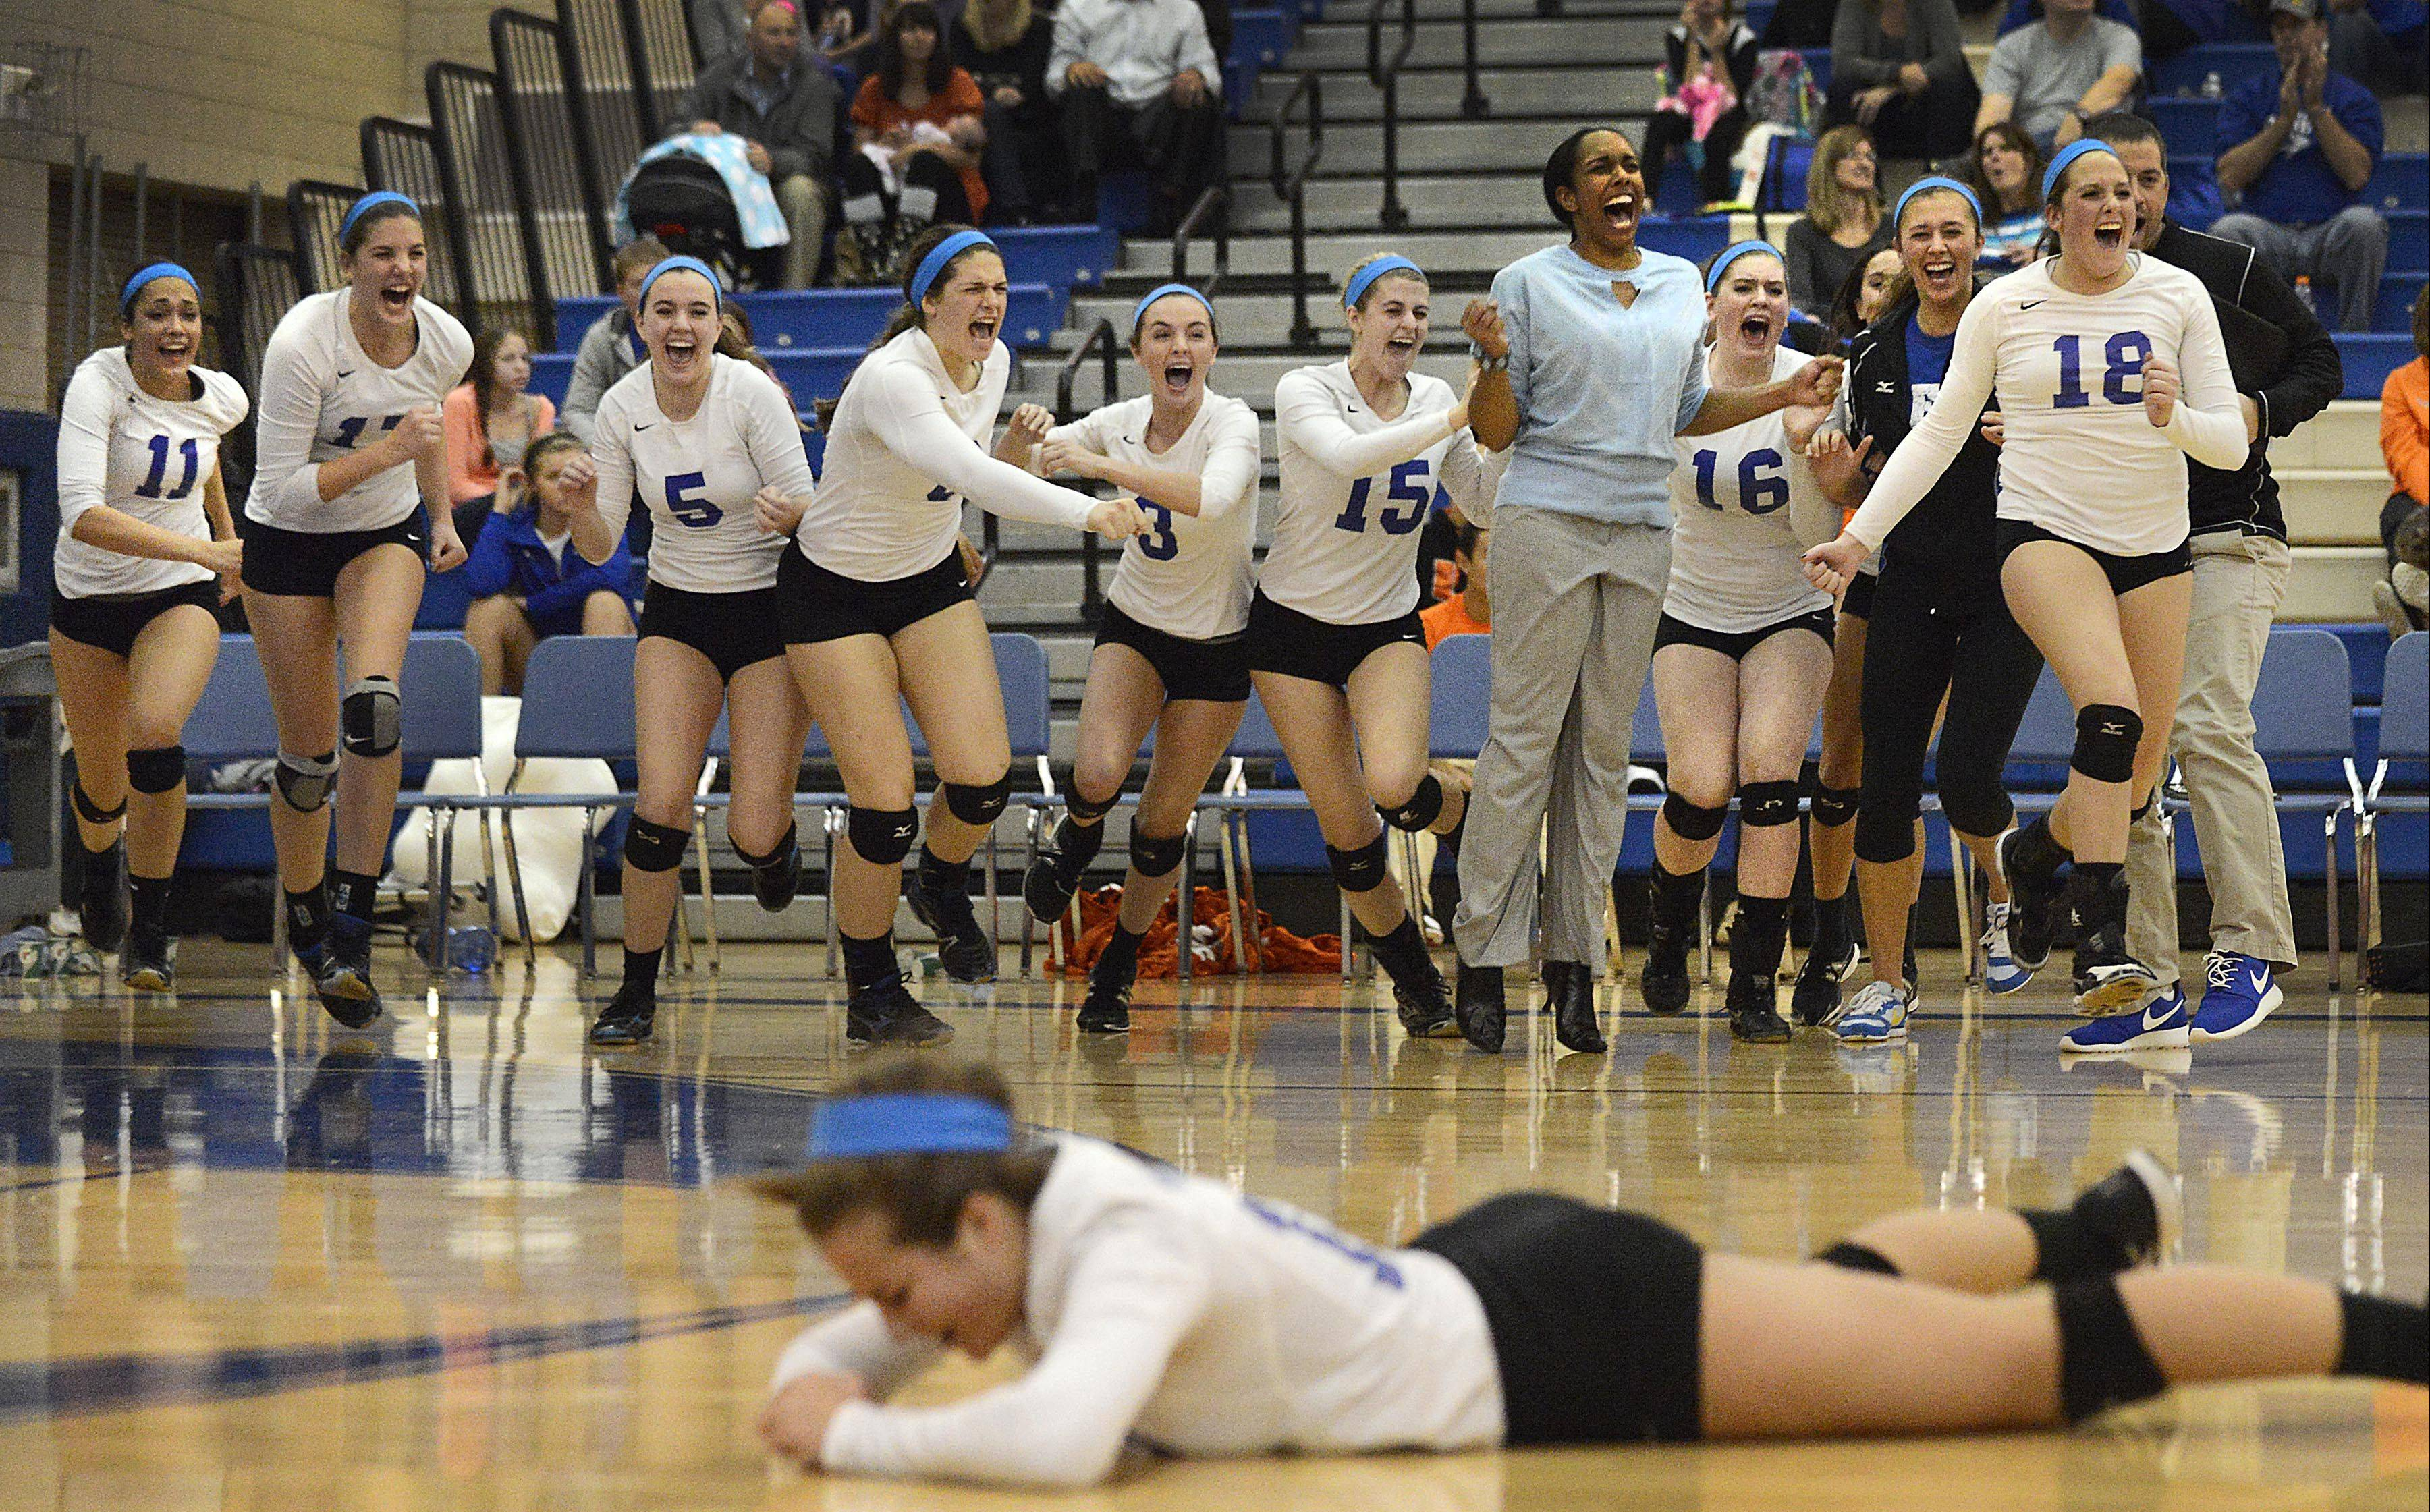 St. Charles North head coach Lindsey Hawkins leads the team in celebration off the bench as setter Sydney Wohlert collapses to the floor after the North Stars beat St. Charles East in two games Tuesday in the Class 4A sectional semifinal in Geneva.